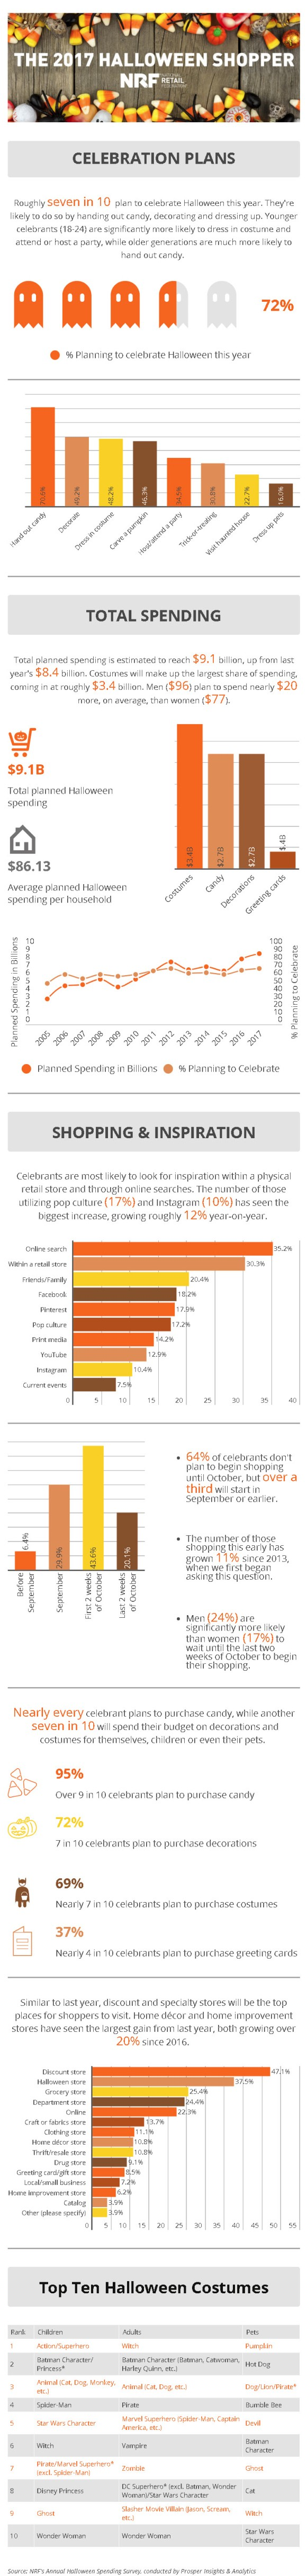 Halloween Big for Retailers. With more than 179 million Americans planning to partake in Halloween festivities, up from 171 million last year, spending is slated to reach a record high in survey history.